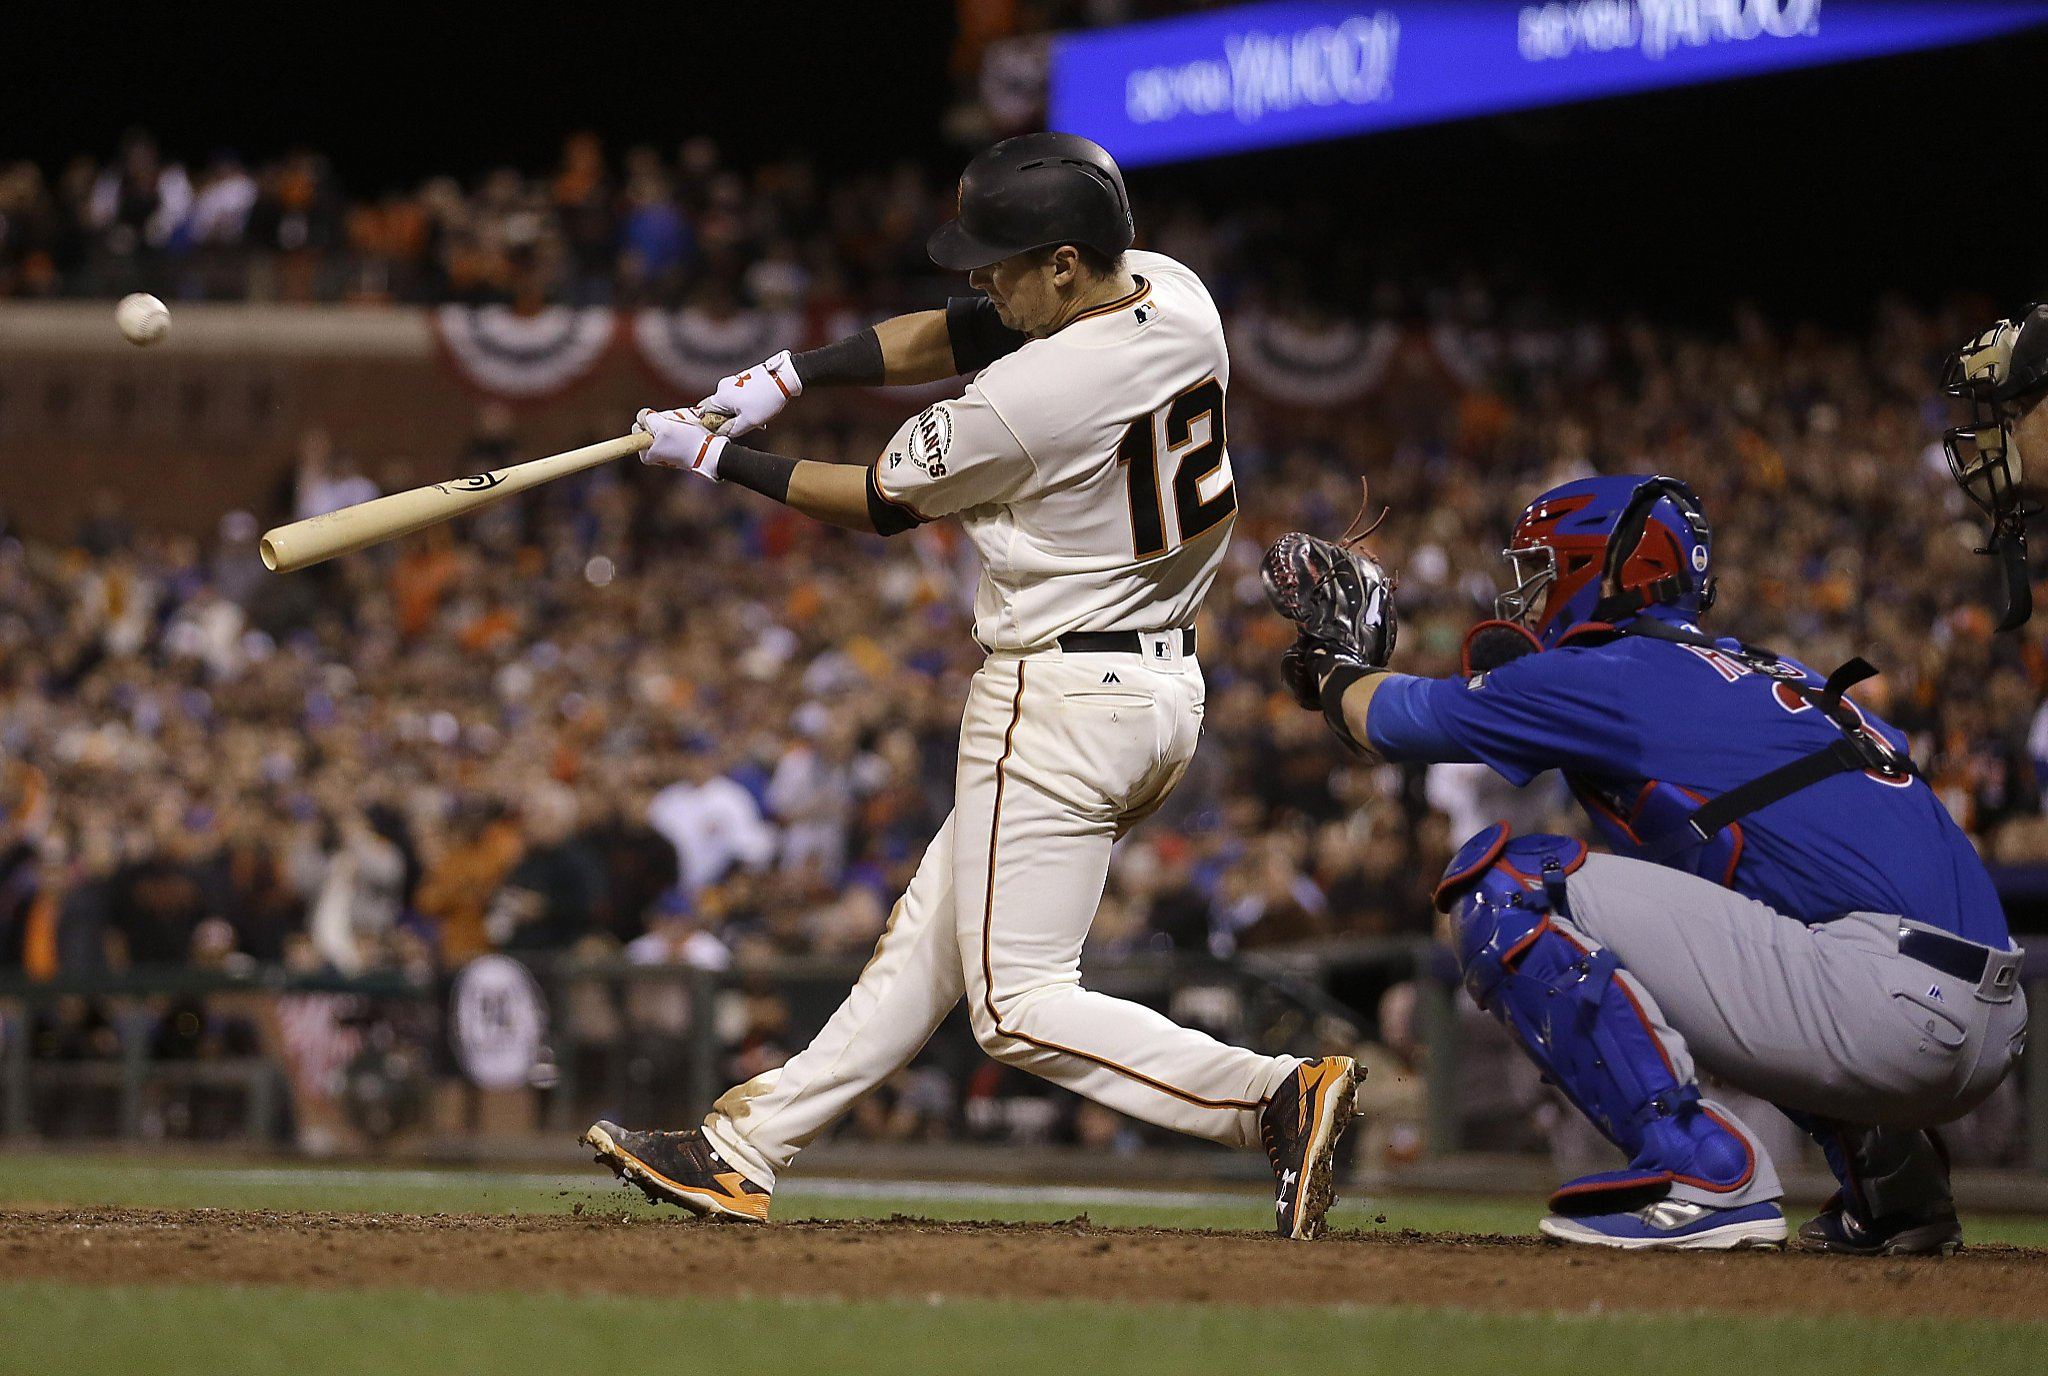 Unlikely series of events sends Giants, Cubs to Game 4 - SFChronicle com